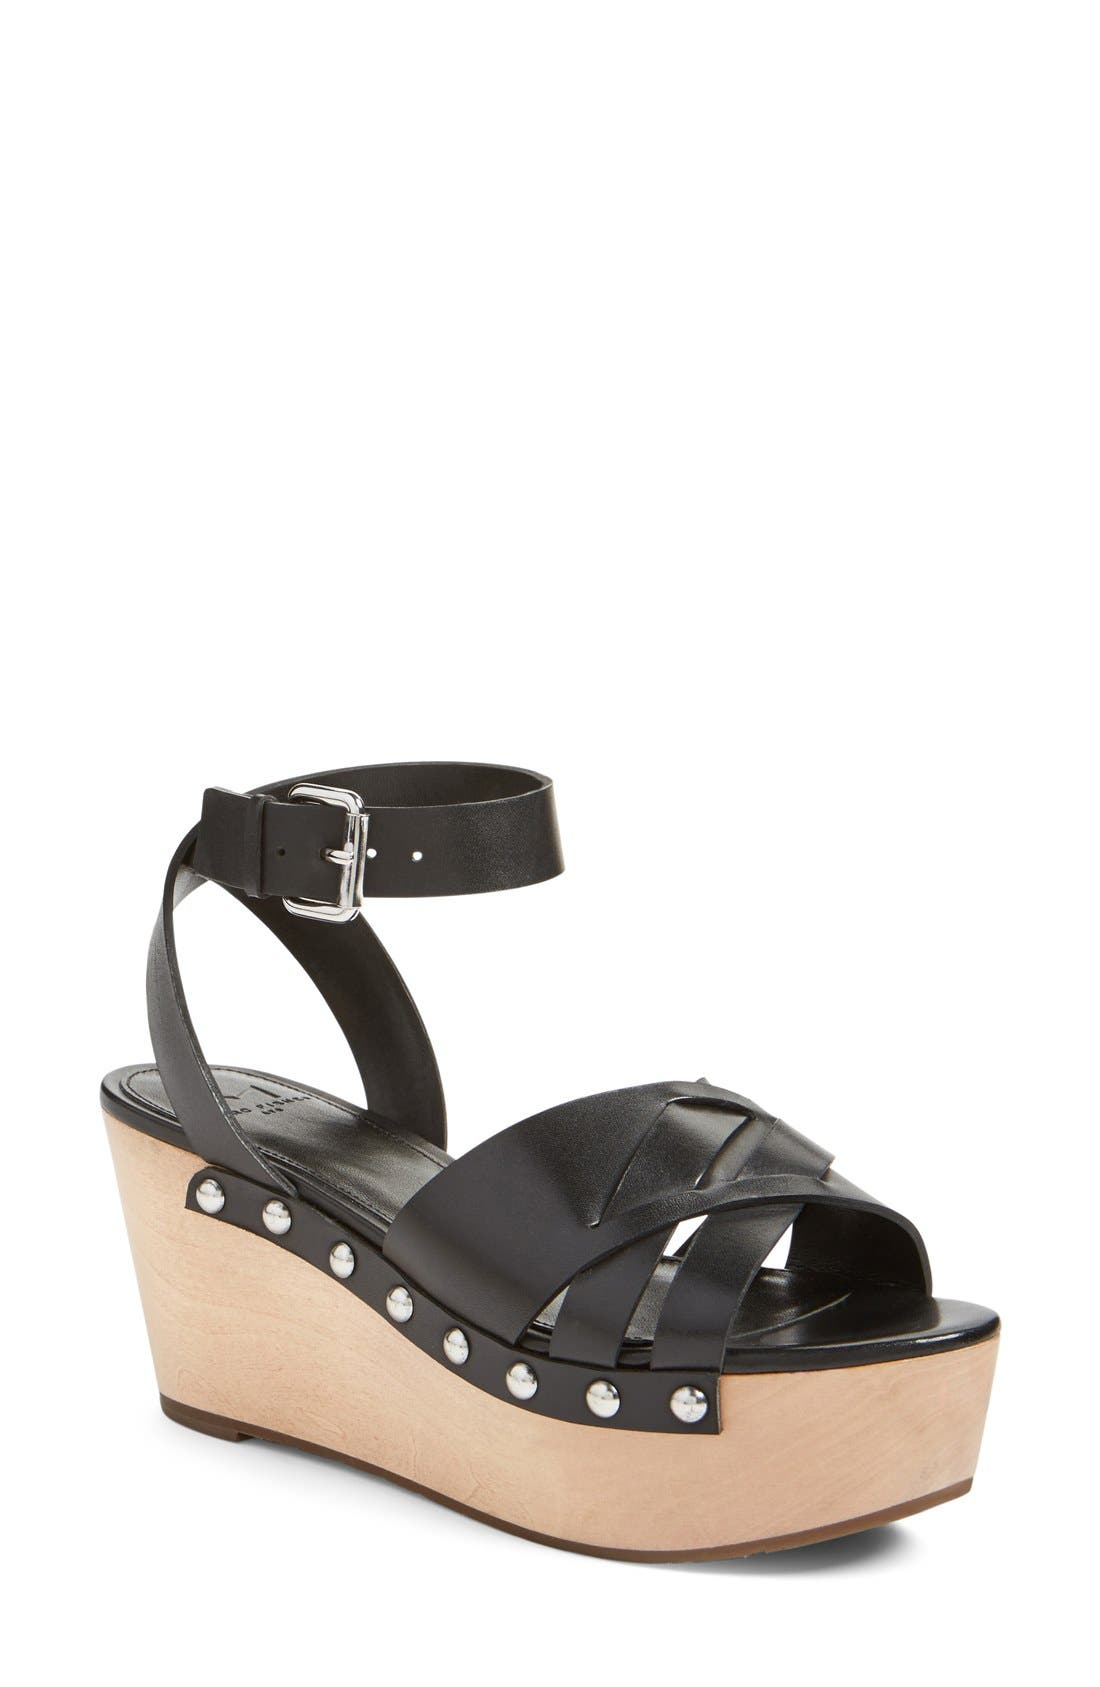 MARC FISHER LTD, 'Camilla' Wedge Sandal, Main thumbnail 1, color, 001